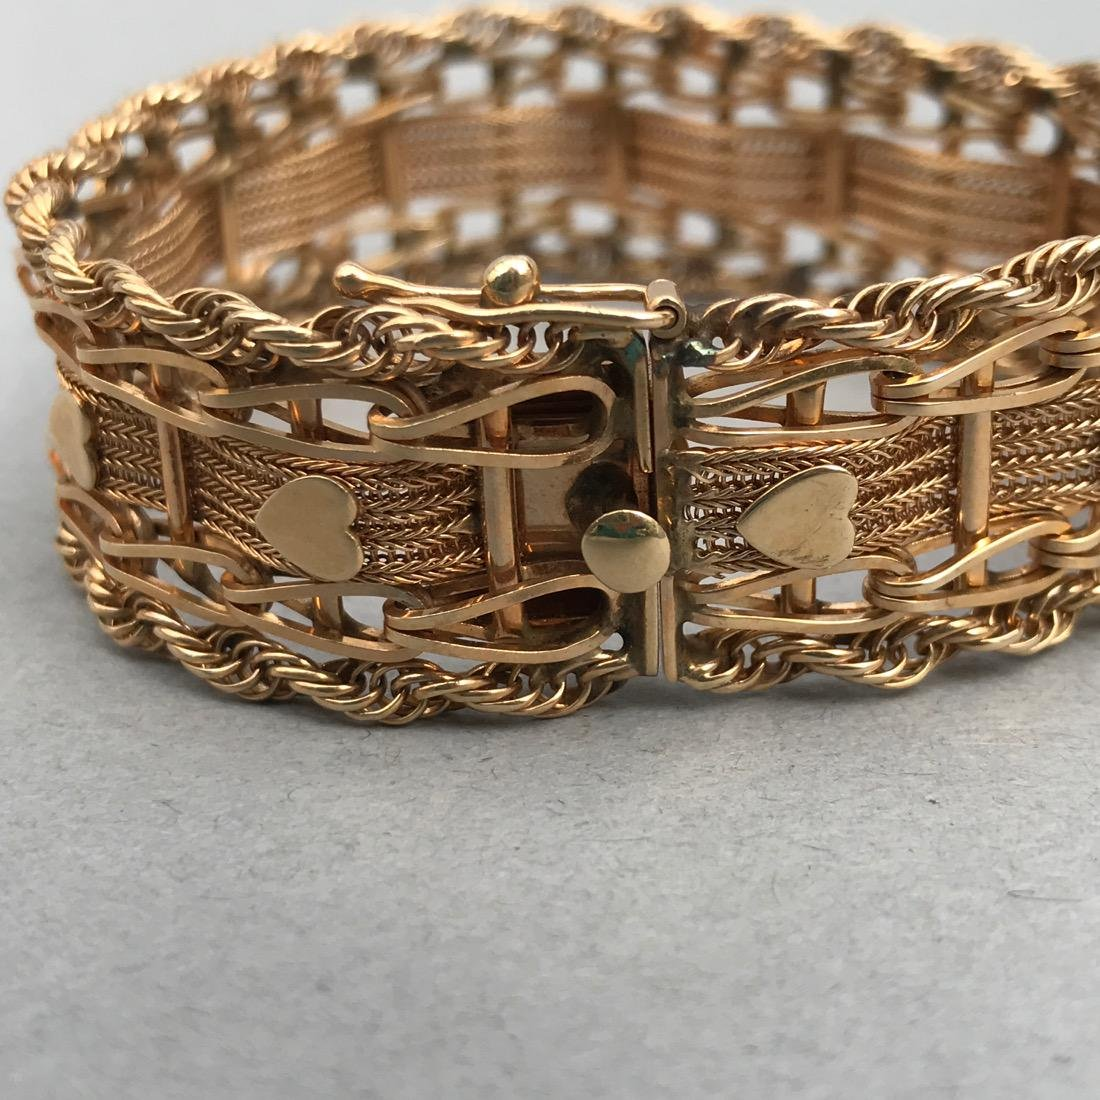 Intricate 14K Gold Bracelet - 3